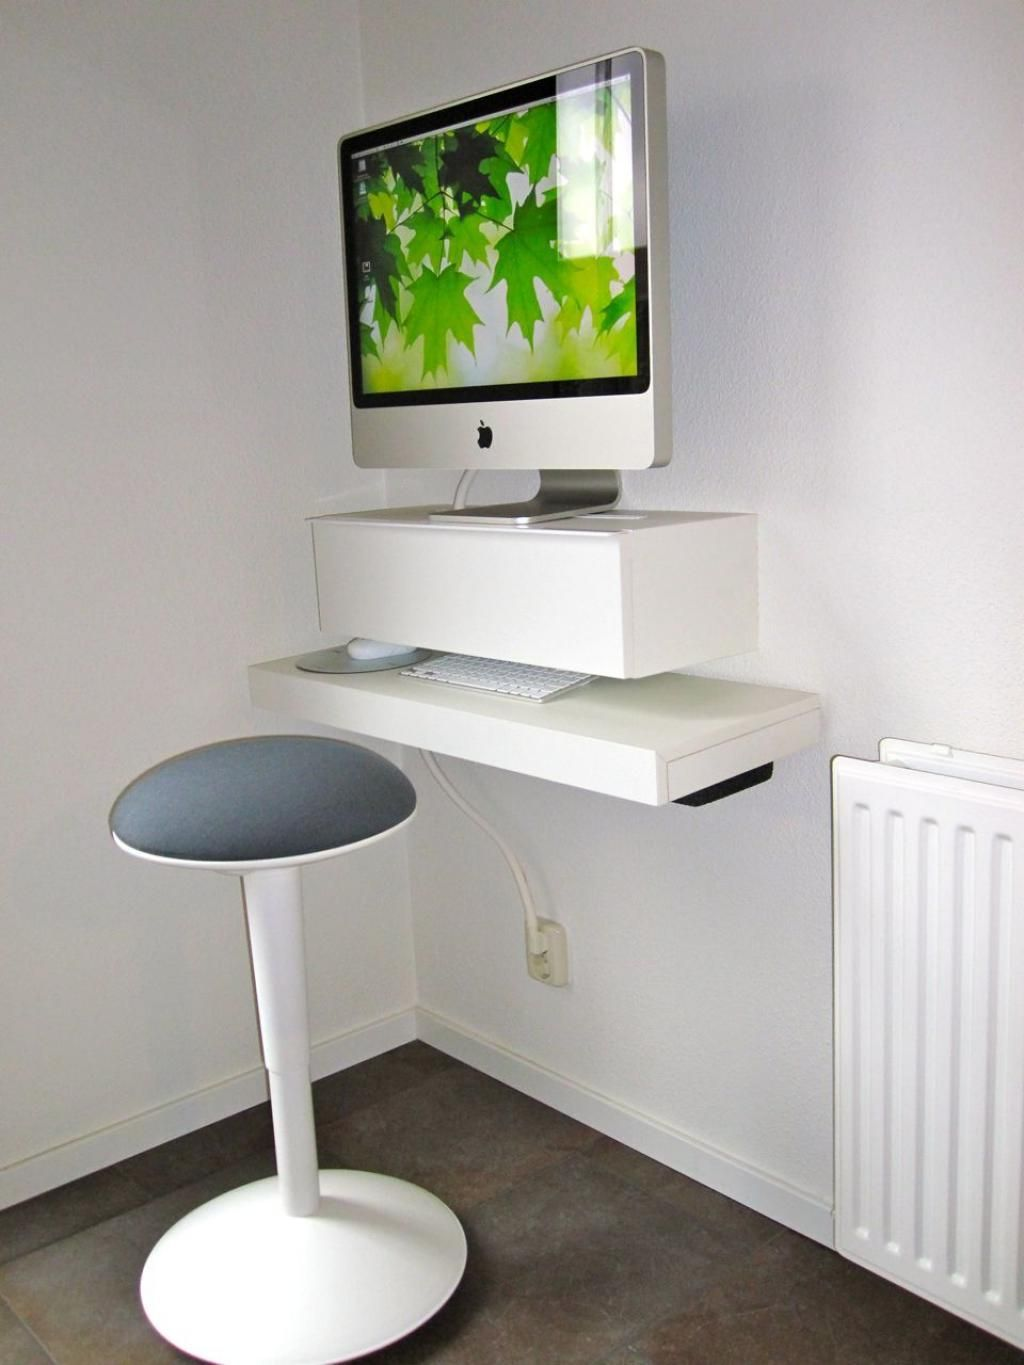 Wall mounted computer table designs - Round Bench Combined With Minimalist Wall Mount Computer Desk Feat White Heater On Home Office Creative